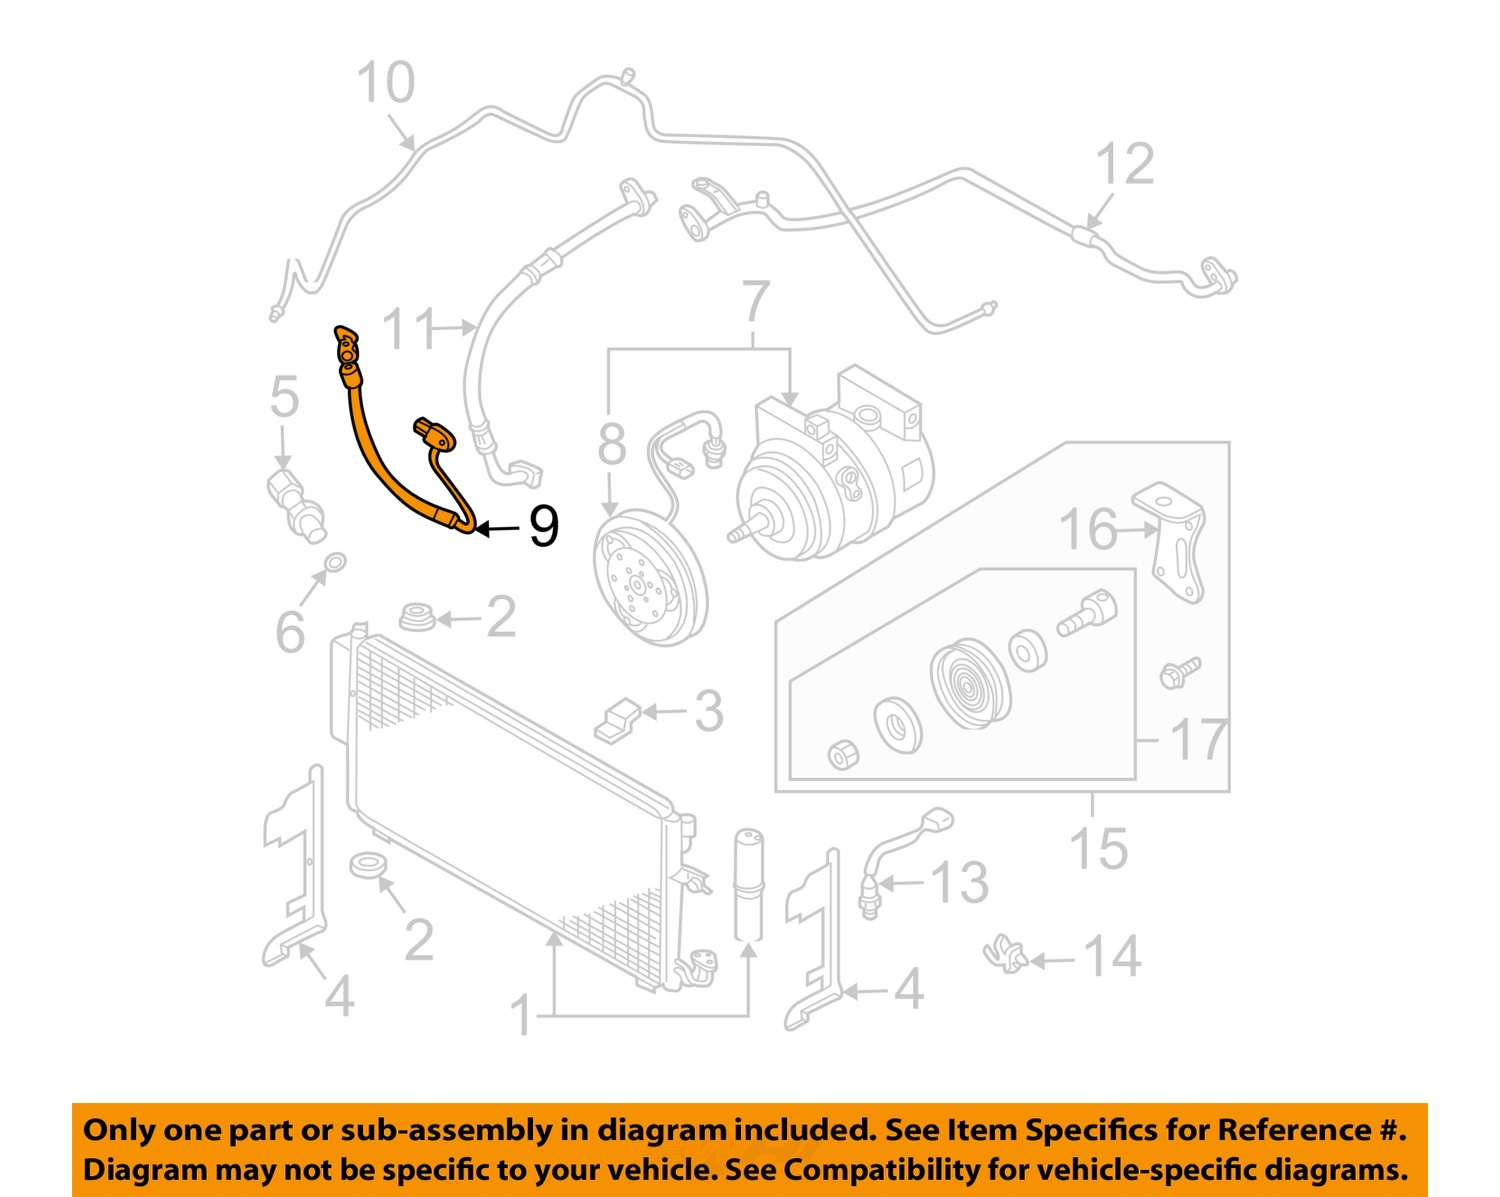 240sx starter wiring diagram 240sx image wiring 1989 nissan 240sx wiring diagram solidfonts on 240sx starter wiring diagram